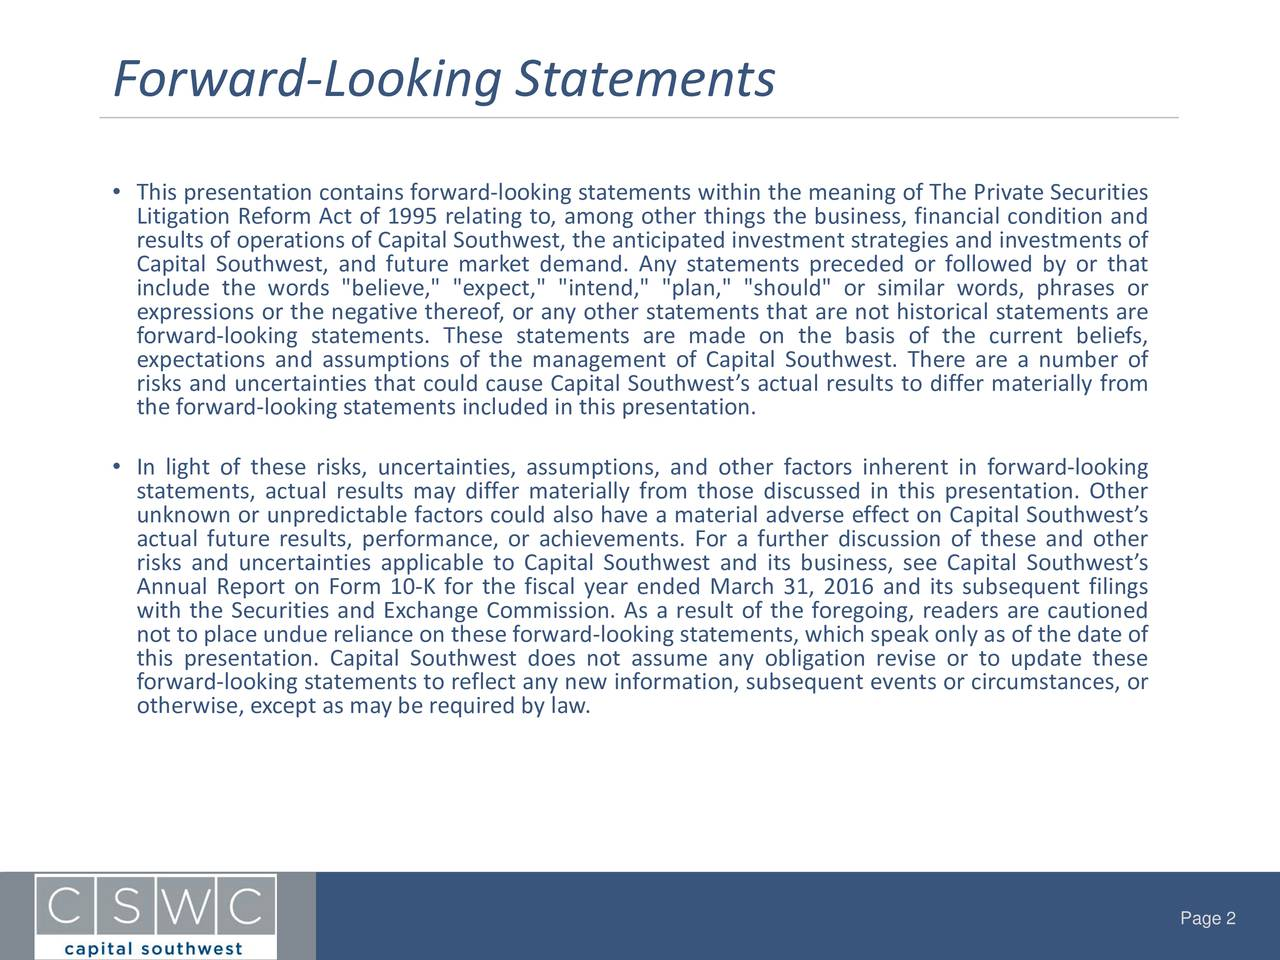 """This presentation containsforward-looking statements within the meaning of The PrivateSecurities Litigation ReformAct of 1995 relating to, among other things the business, financial condition and Capital Southwest, and future market demand. Any statements preceded or followed by or thatments of include the words """"believe,"""" """"expect,"""" """"intend,"""" """"plan,"""" """"should"""" or similar words, phrases or expressions or the negative thereof, or any other statements that are not historical statements are forward-looking statements. These statements are made on the basis of the current beliefs, expectations and assumptions of the management of Capital Southwest. There are a number of risks and uncertainties that could cause Capital Southwests actual results to differmaterially from the forward-looking statements included in this presentation. In light of these risks, uncertainties, assumptions, and other factors inherent in forward-looking statements, actual results may differ materially from those discussed in this presentation. Other unknown or unpredictable factorscould also have a material adverse effecton Capital Southwests actual future results, performance, or achievements. For a further discussion of these and other risks and uncertainties applicable to Capital Southwest and its business, see Capital Southwests Annual Report on Form 10-K for the fiscal year ended March 31, 2016 and its subsequent filings with the Securities and Exchange Commission. As a result of the foregoing,readers are cautioned not to place undue relianceon these forward-looking statements,which speak only as of the dateof this presentation. Capital Southwest does not assume any obligation revise or to update these otherwise, except as maybe requiredby law.ew information, subsequent eventsor circumstances, or Page 2"""